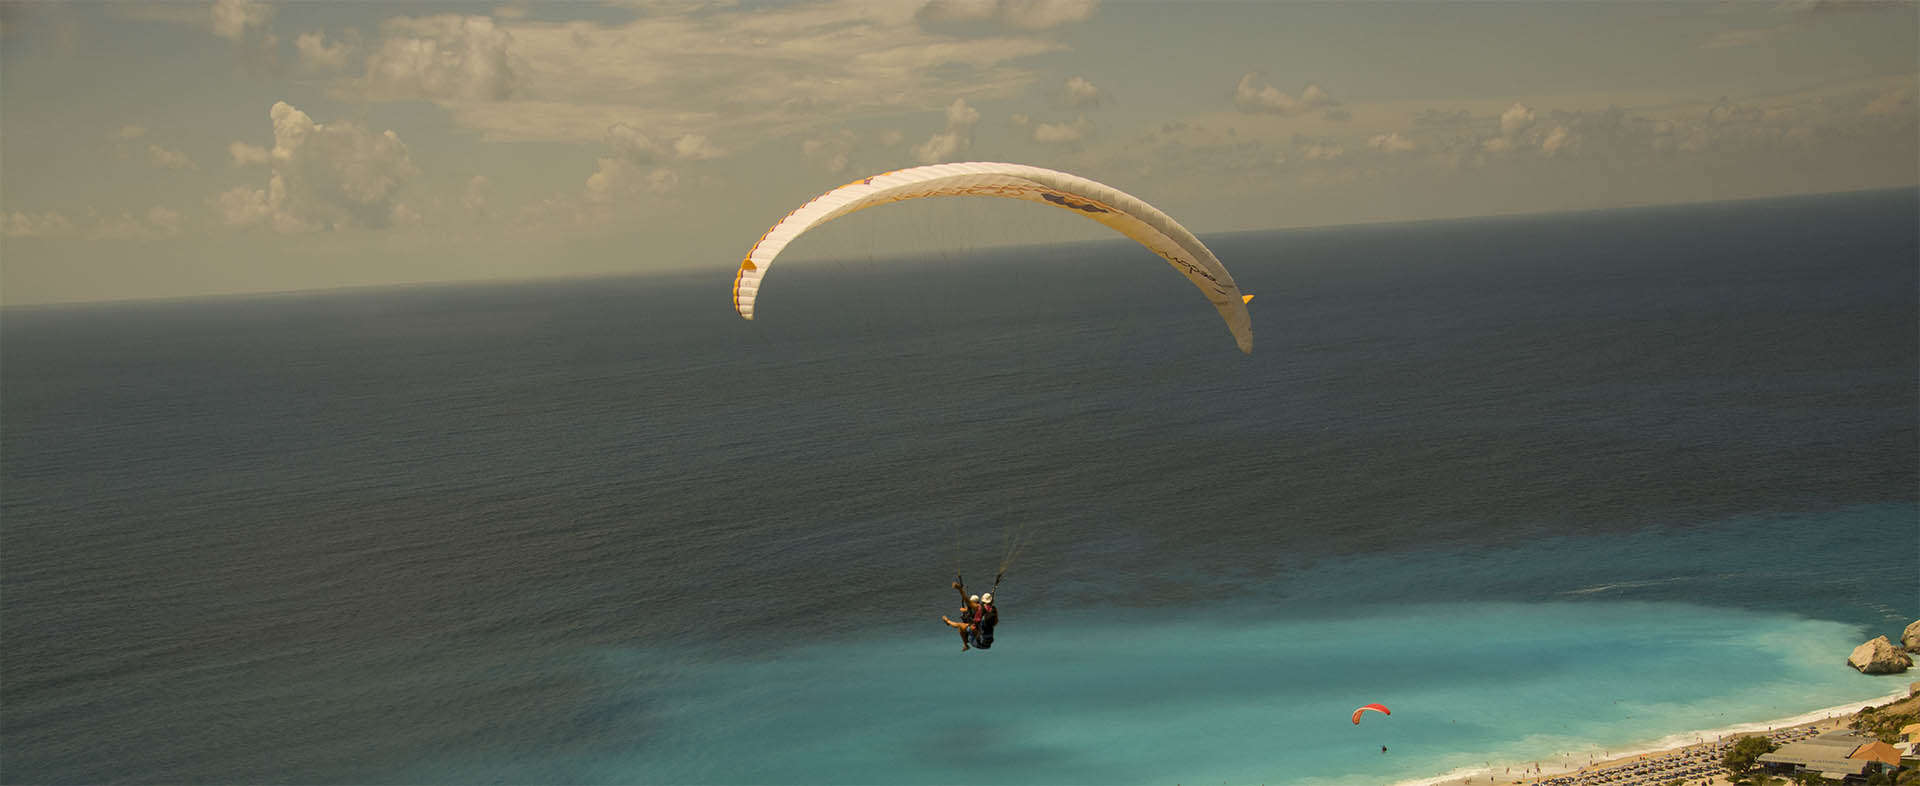 paragliding-footer